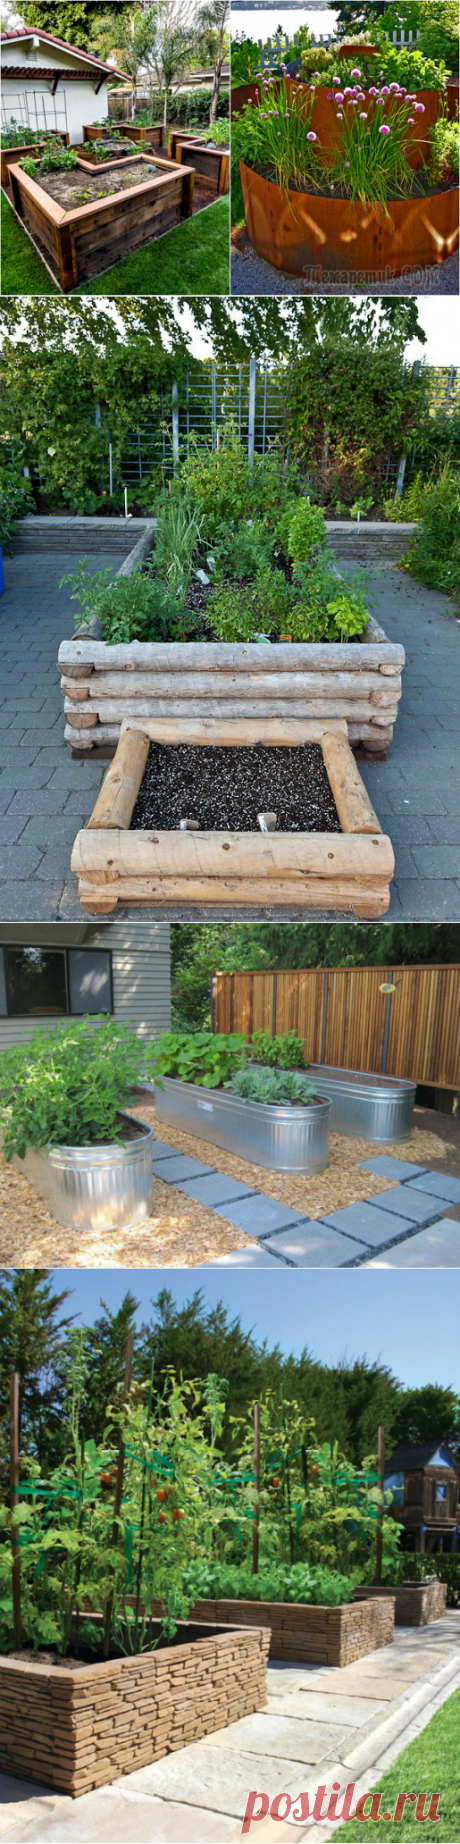 16 ideas of design of high beds for cultivation of a healthy and rich harvest